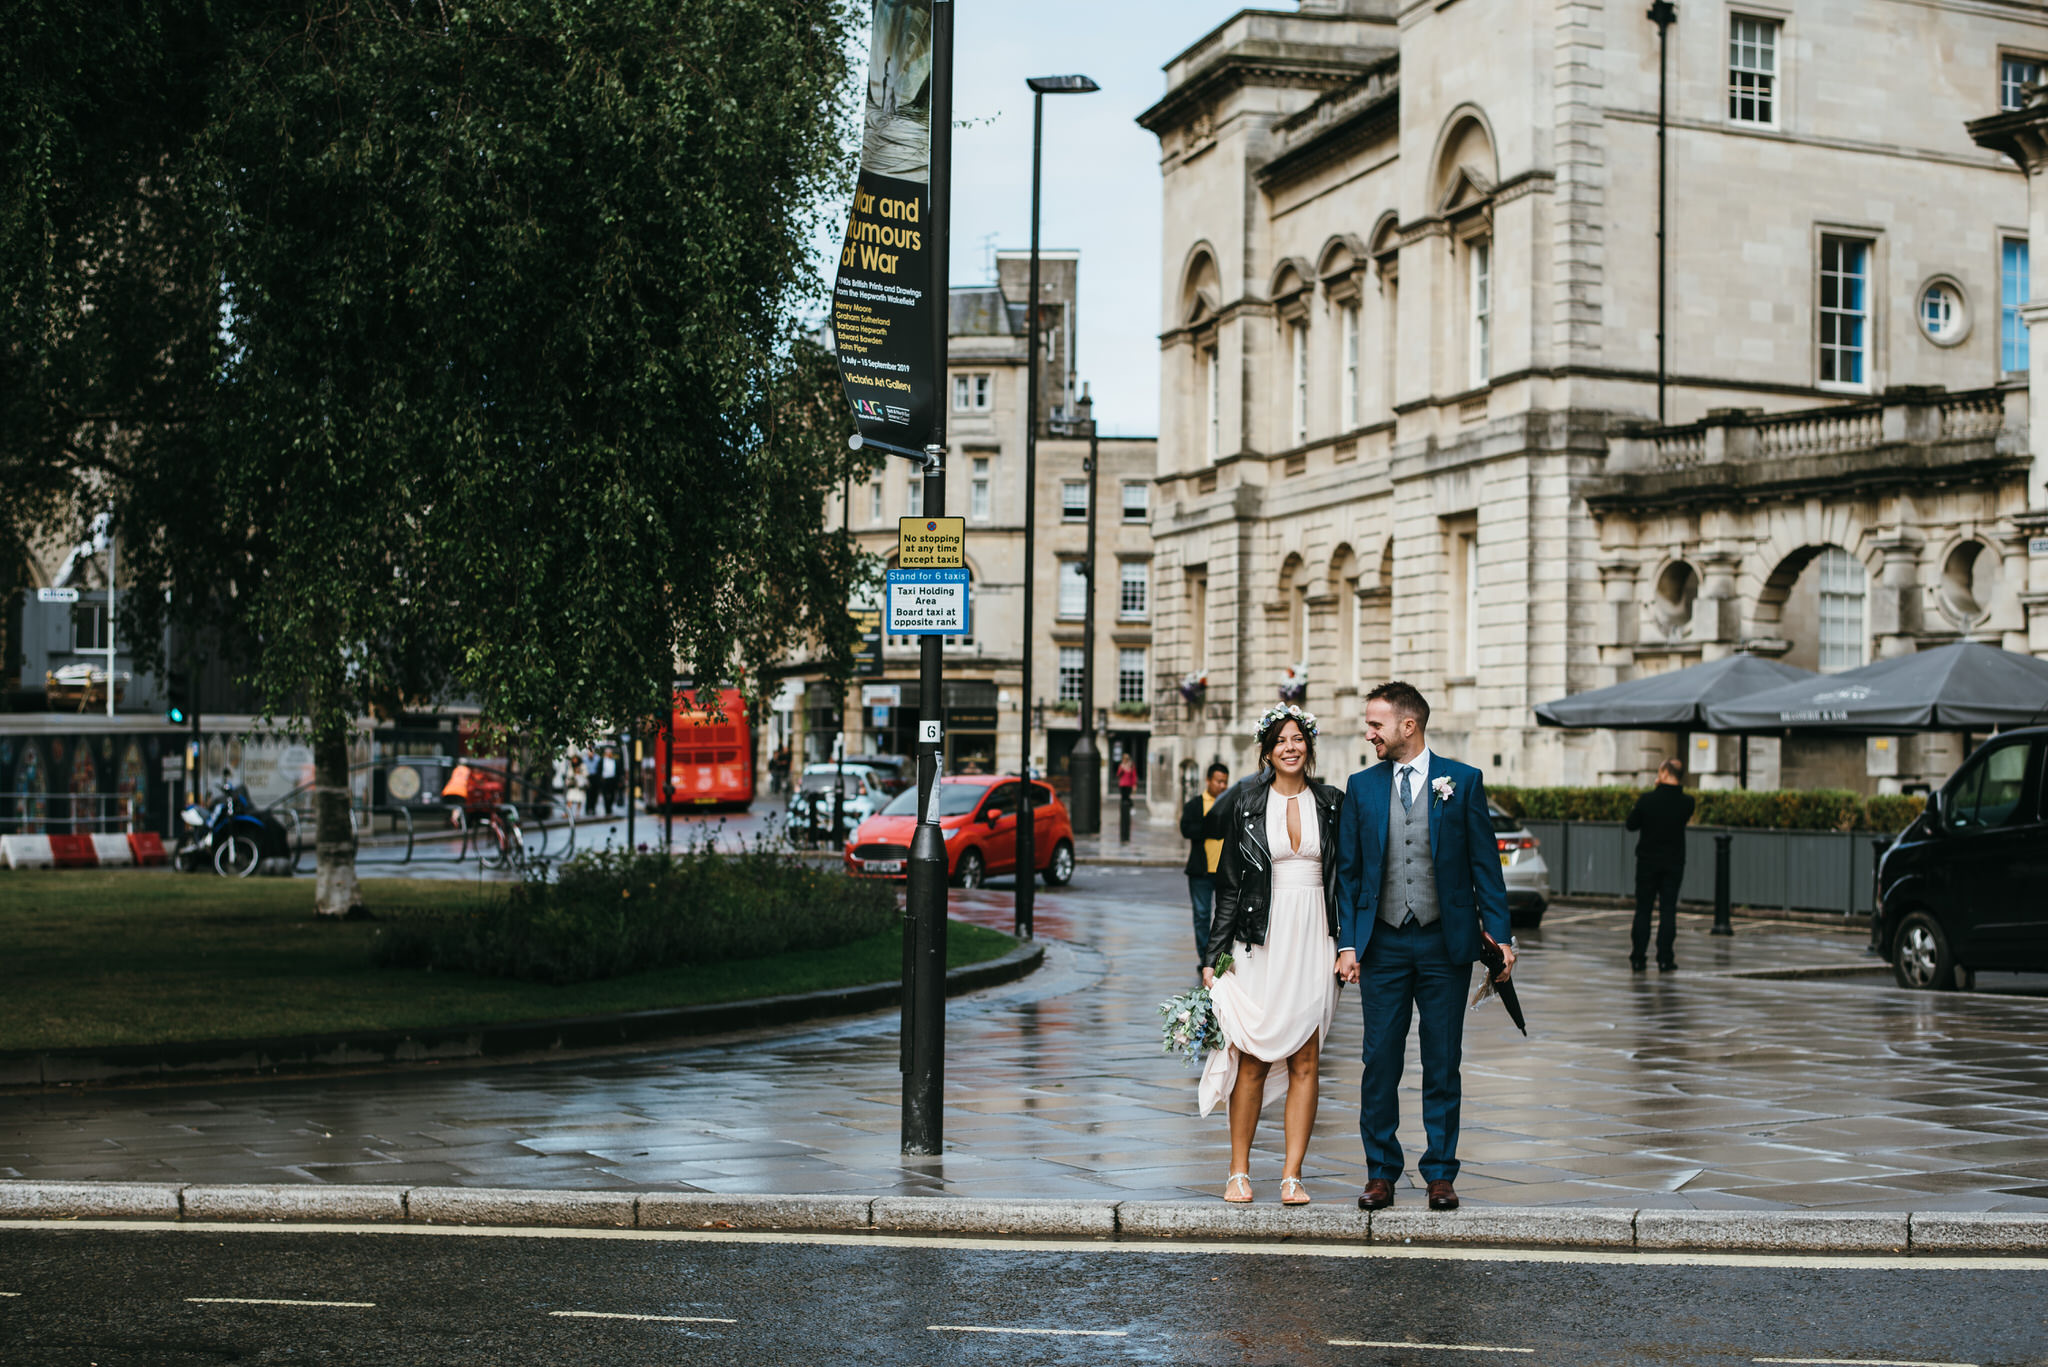 Bath guildhall intimate wedding photography 1